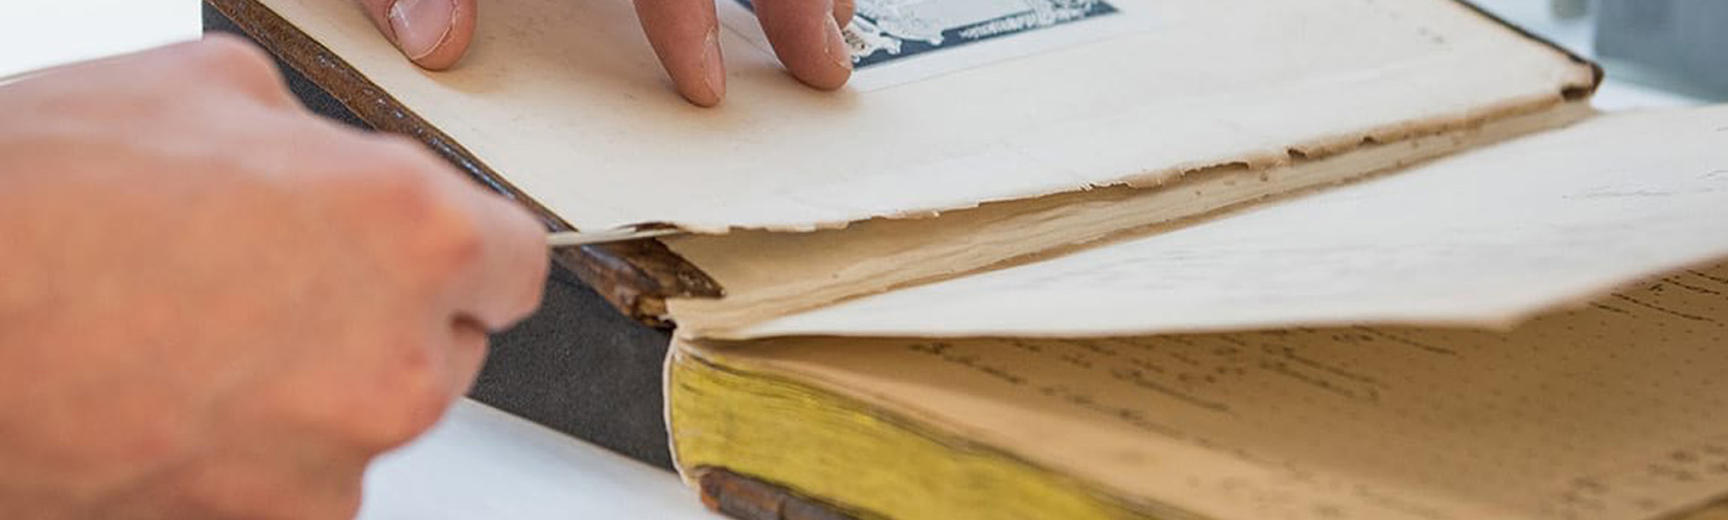 A damaged book being repaired